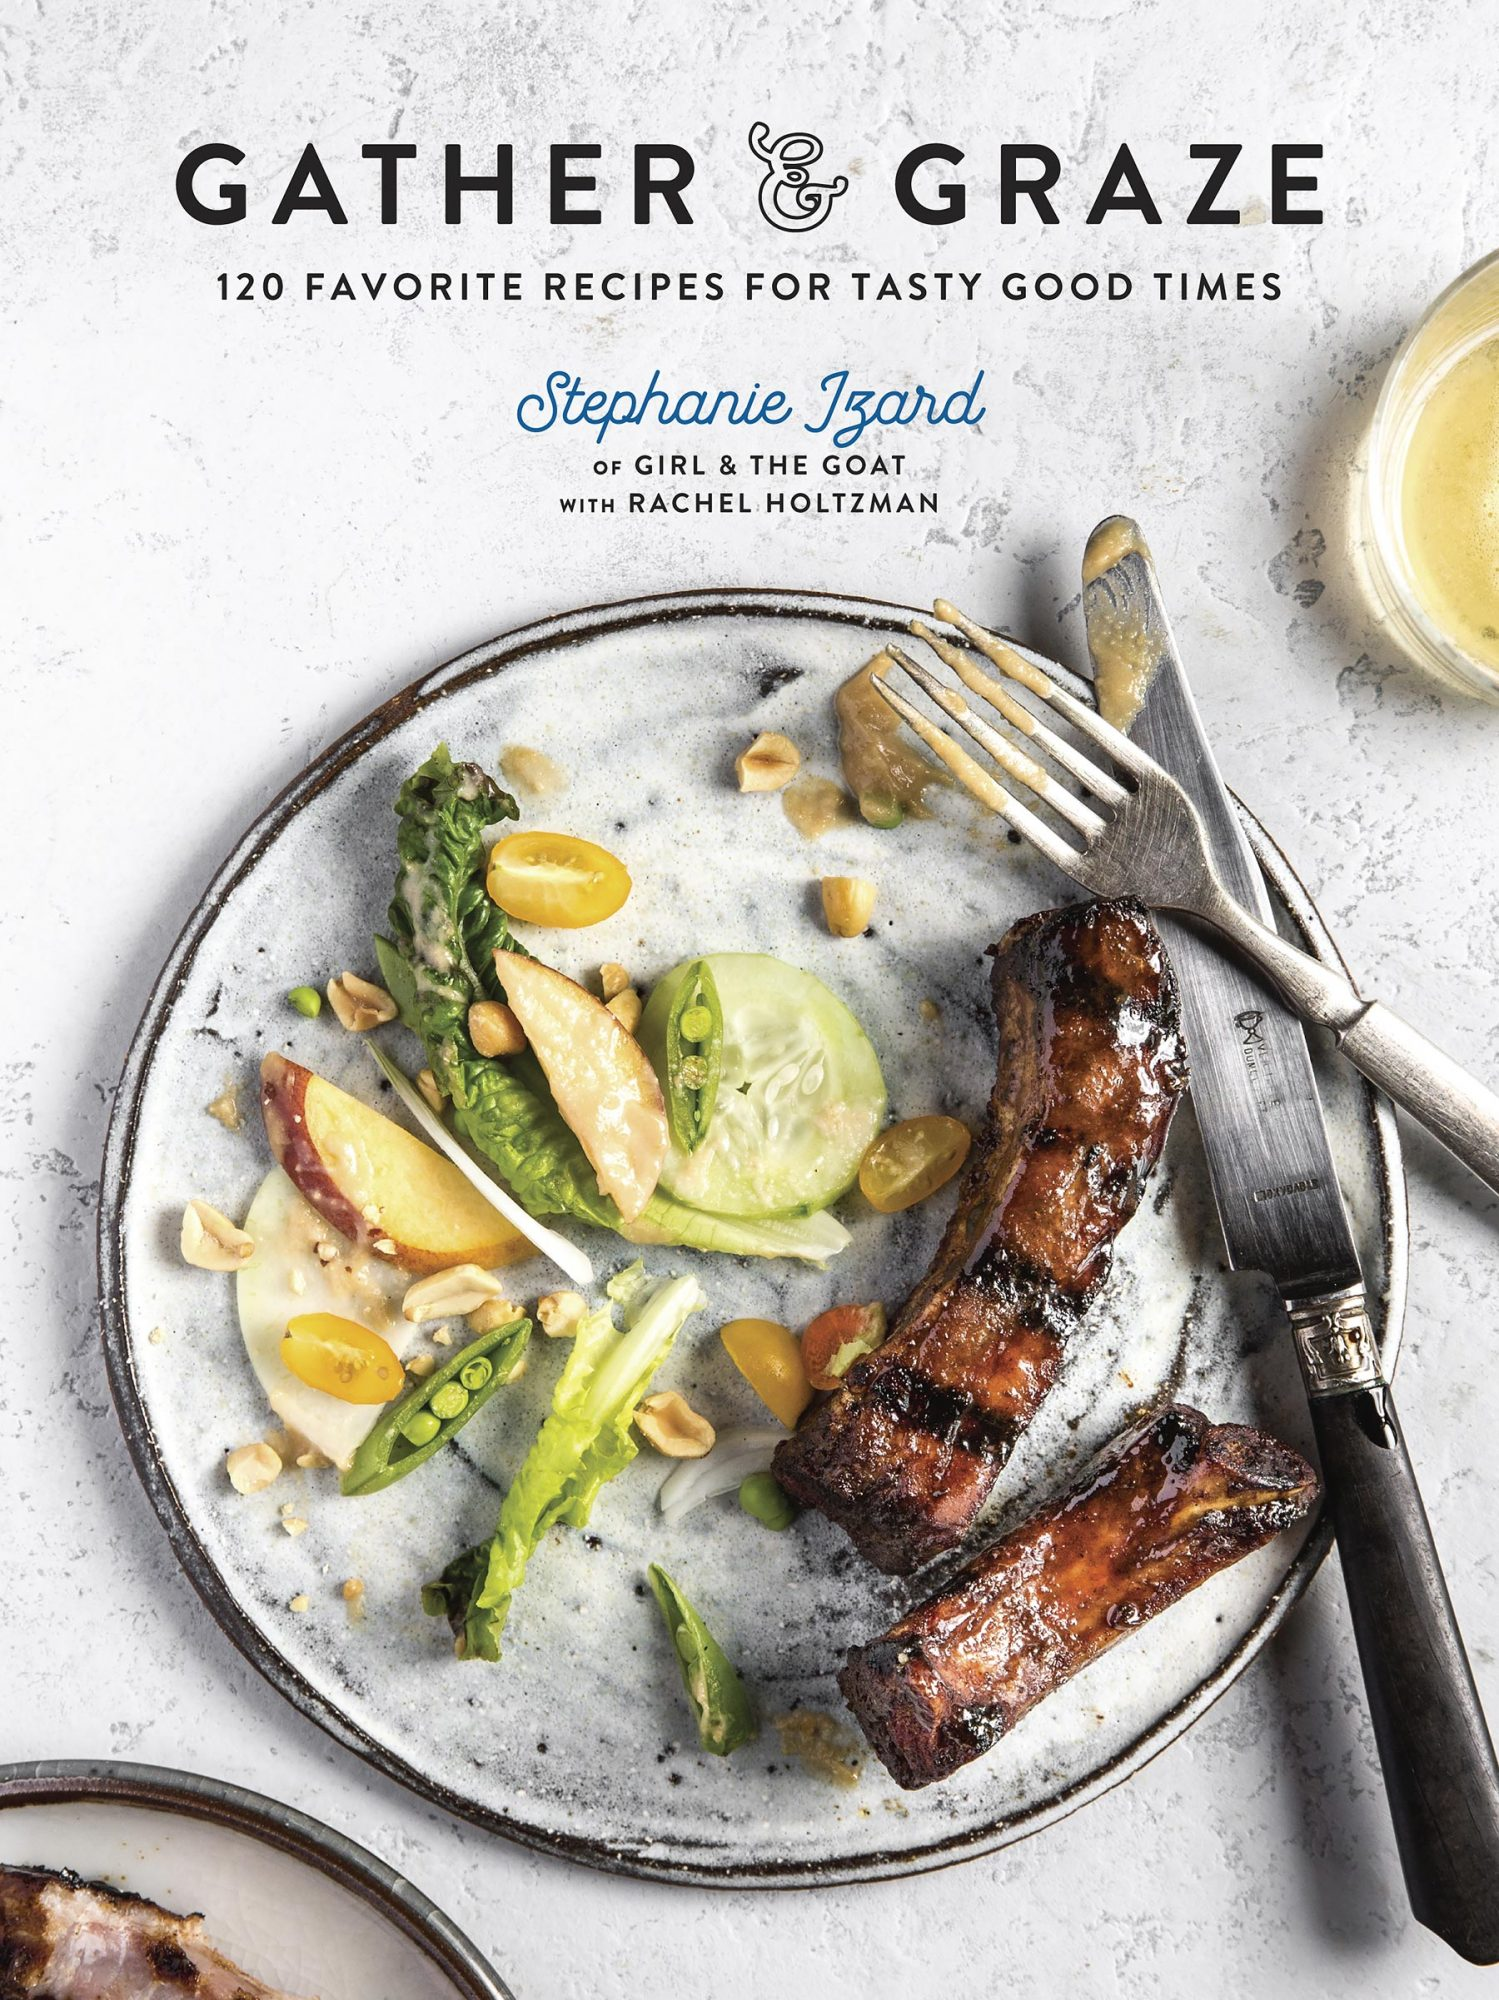 Gather & Graze, by Stephanie Izard